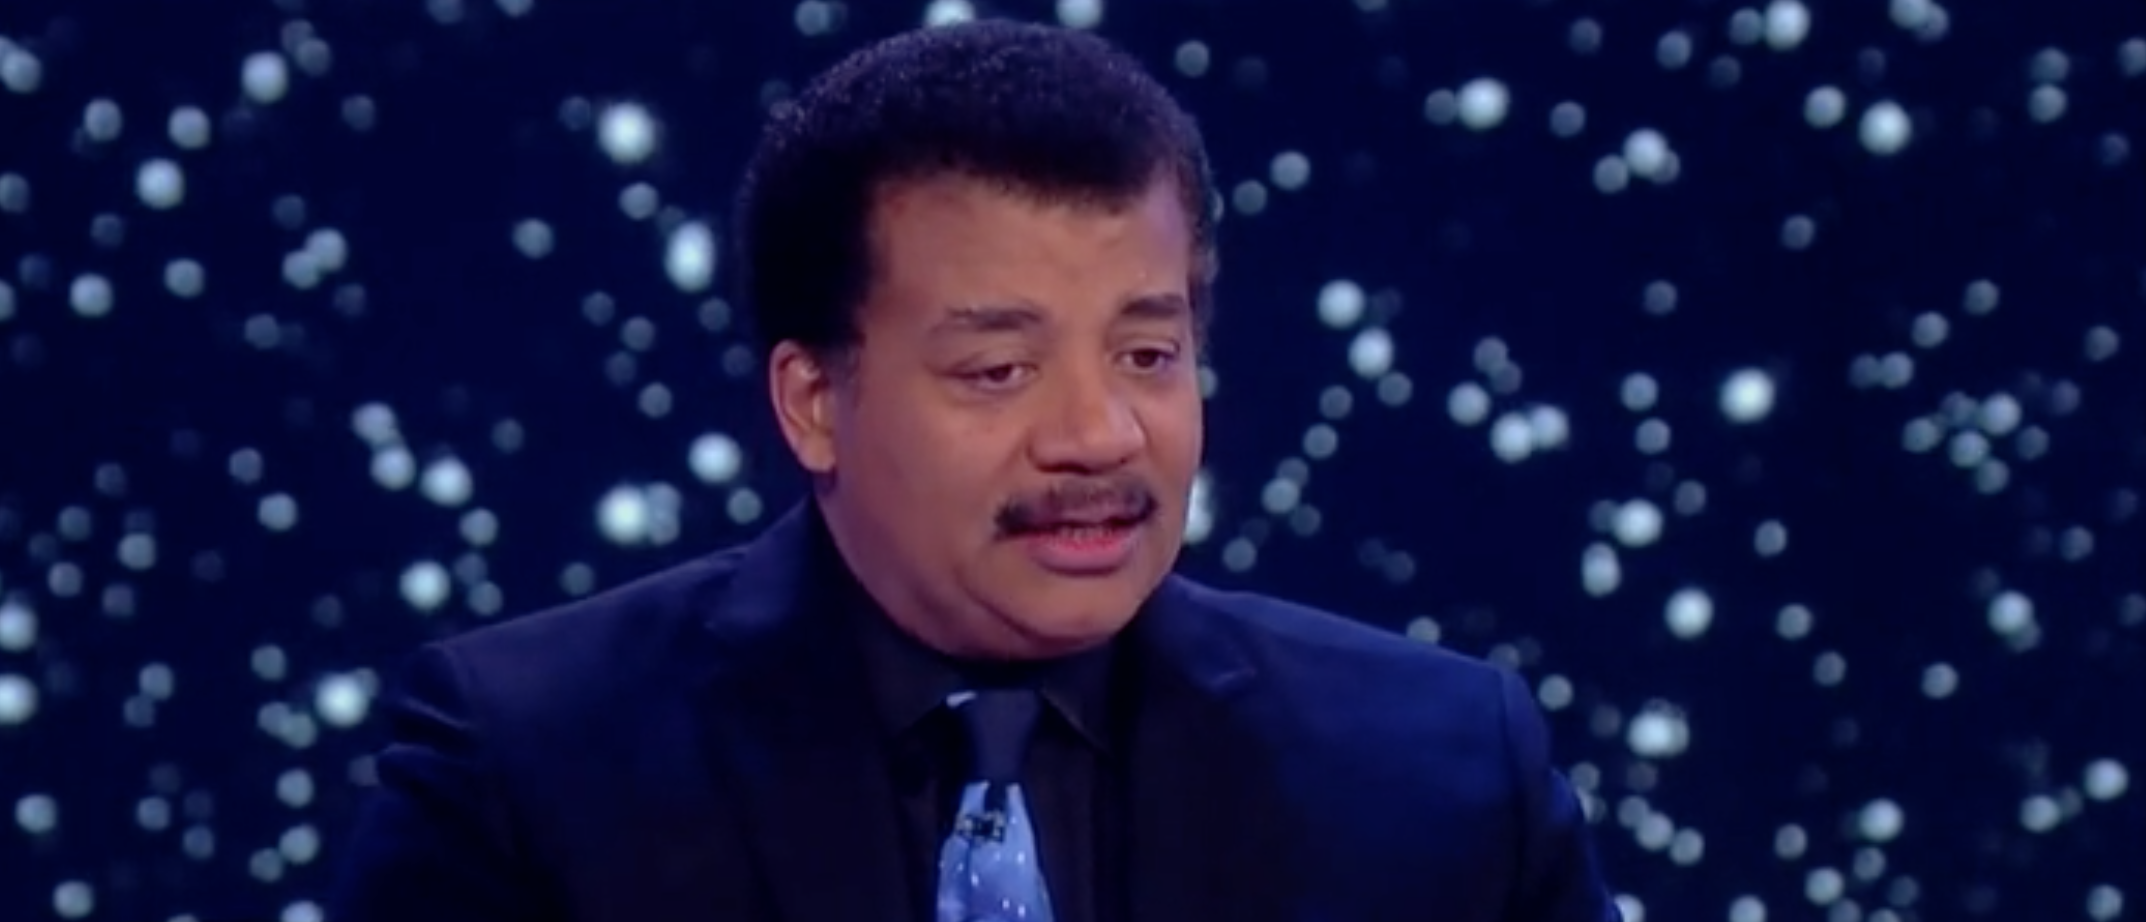 Neil DeGrasse Tyson Drops Bomb On 'The View' — Says 'I Don't Object' To A Space Force